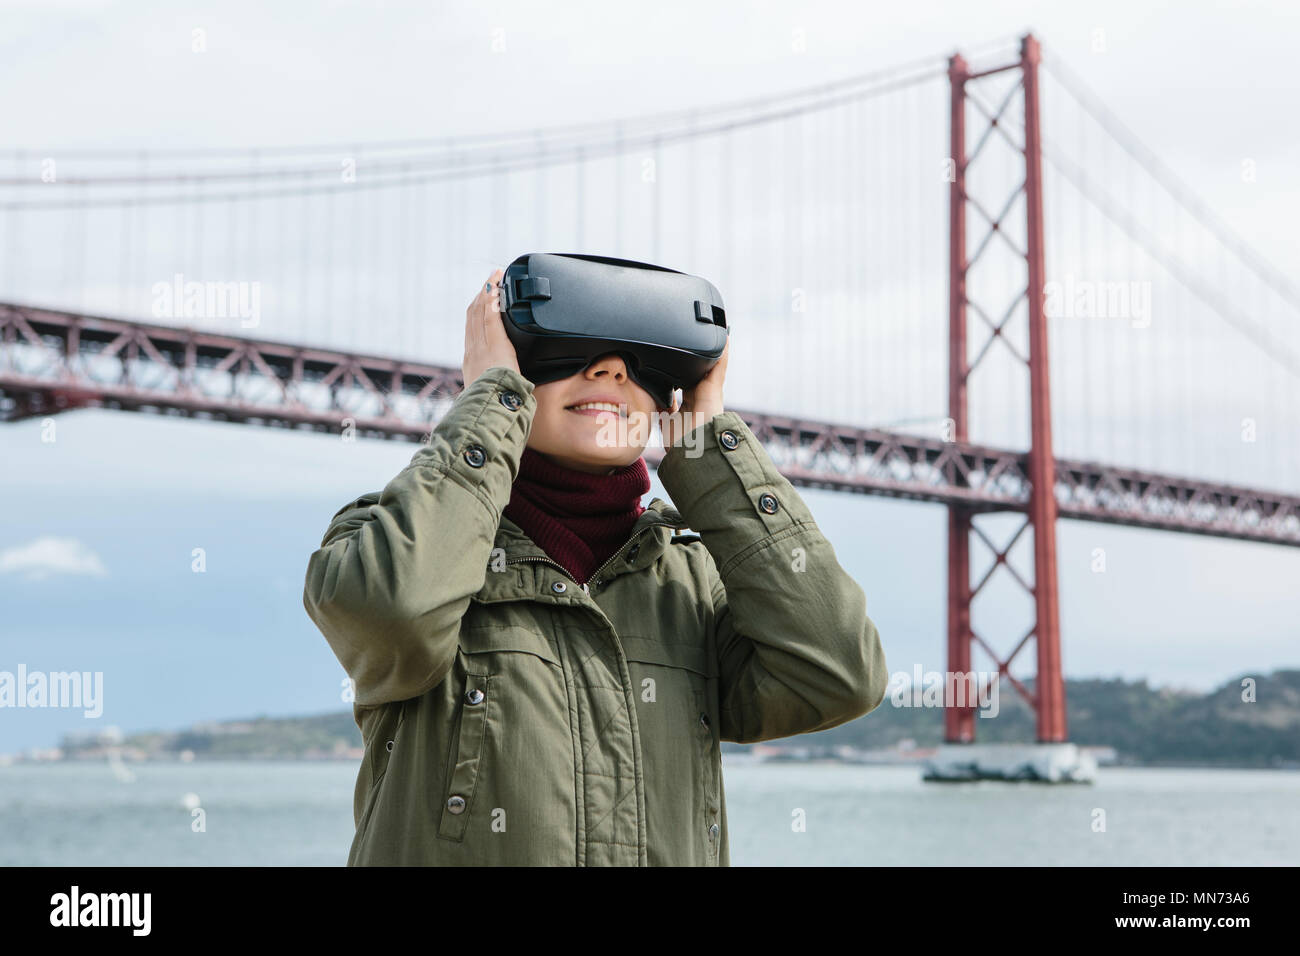 Young beautiful girl wearing virtual reality glasses. 25th of April bridge in Lisbon in the background. The concept of modern technologies and their use in everyday life - Stock Image